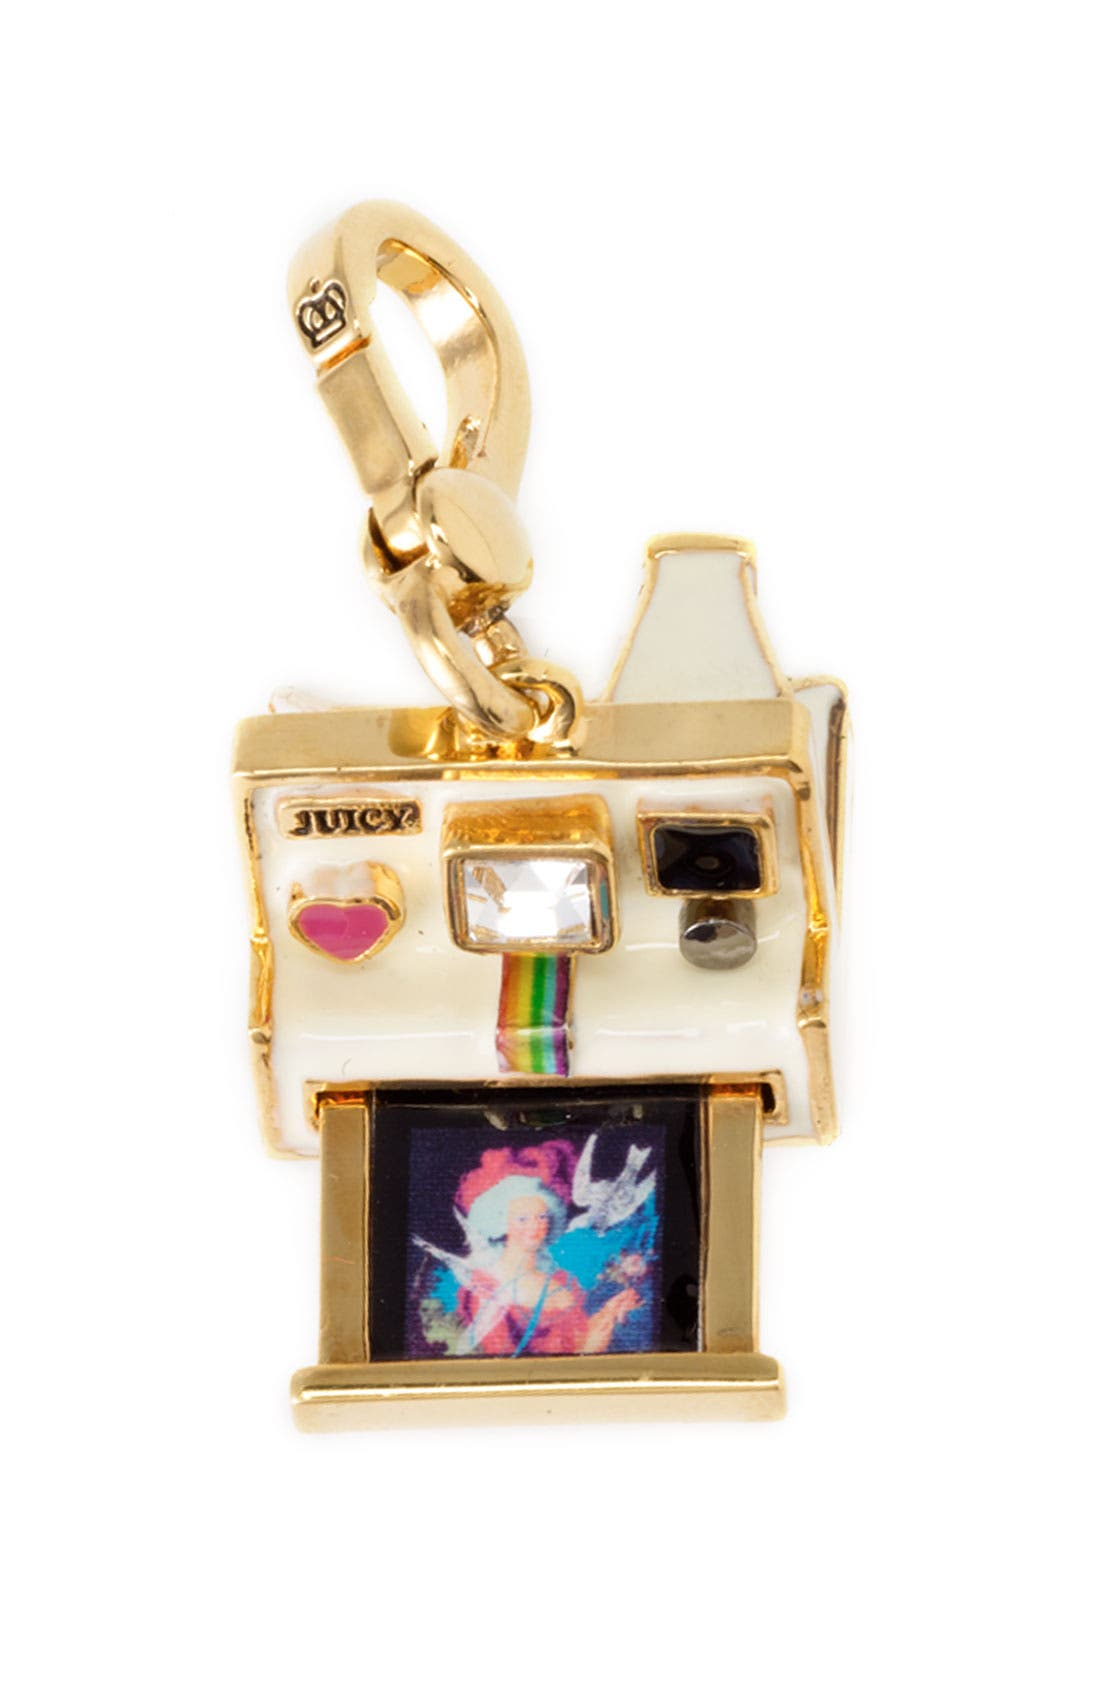 Alternate Image 1 Selected - Juicy Couture Camera Charm